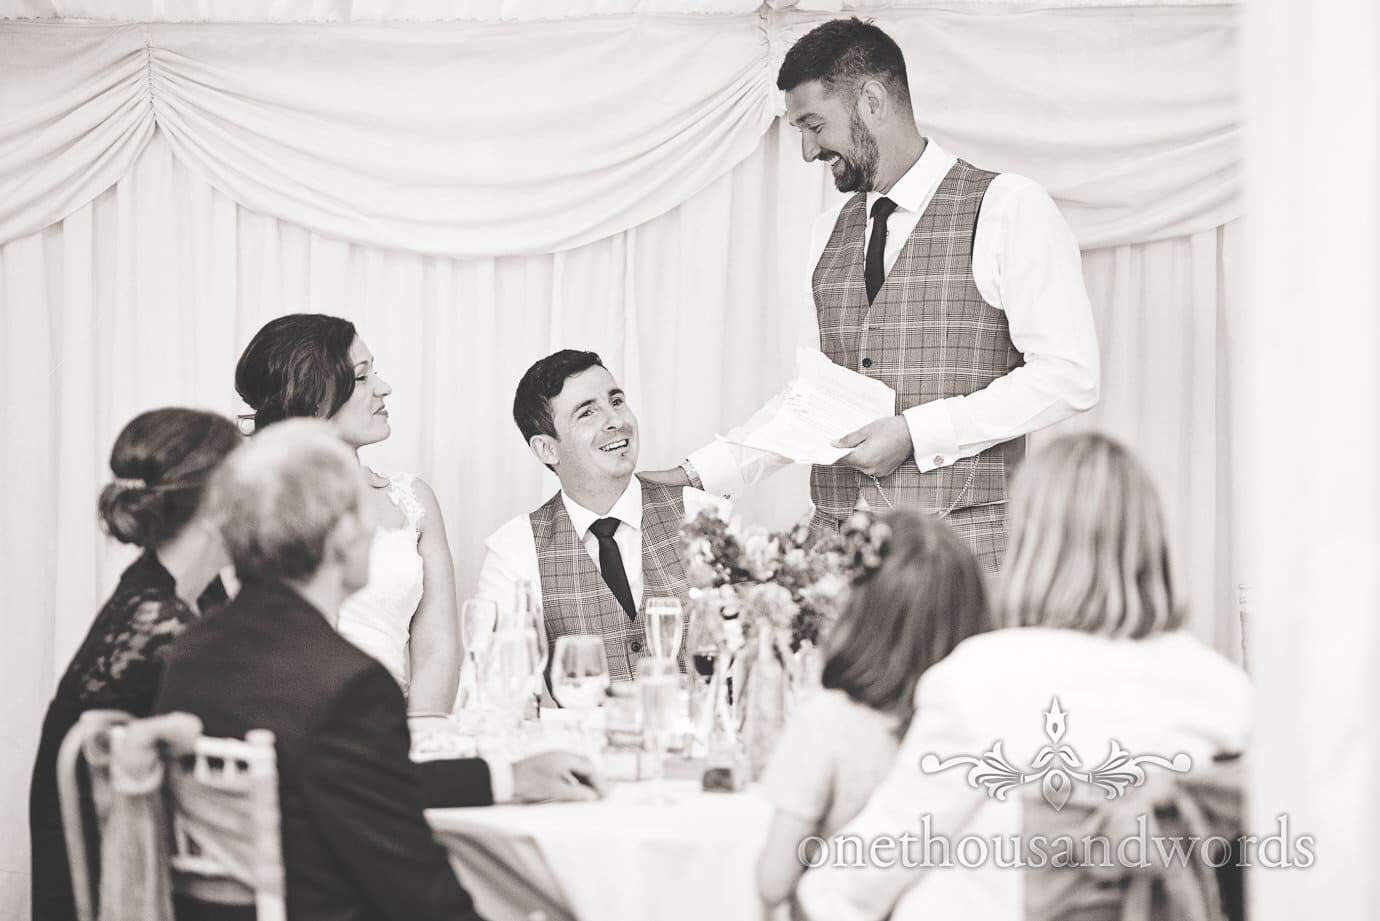 Black and white wedding speeches photograph at The Old Vicarage marquee wedding